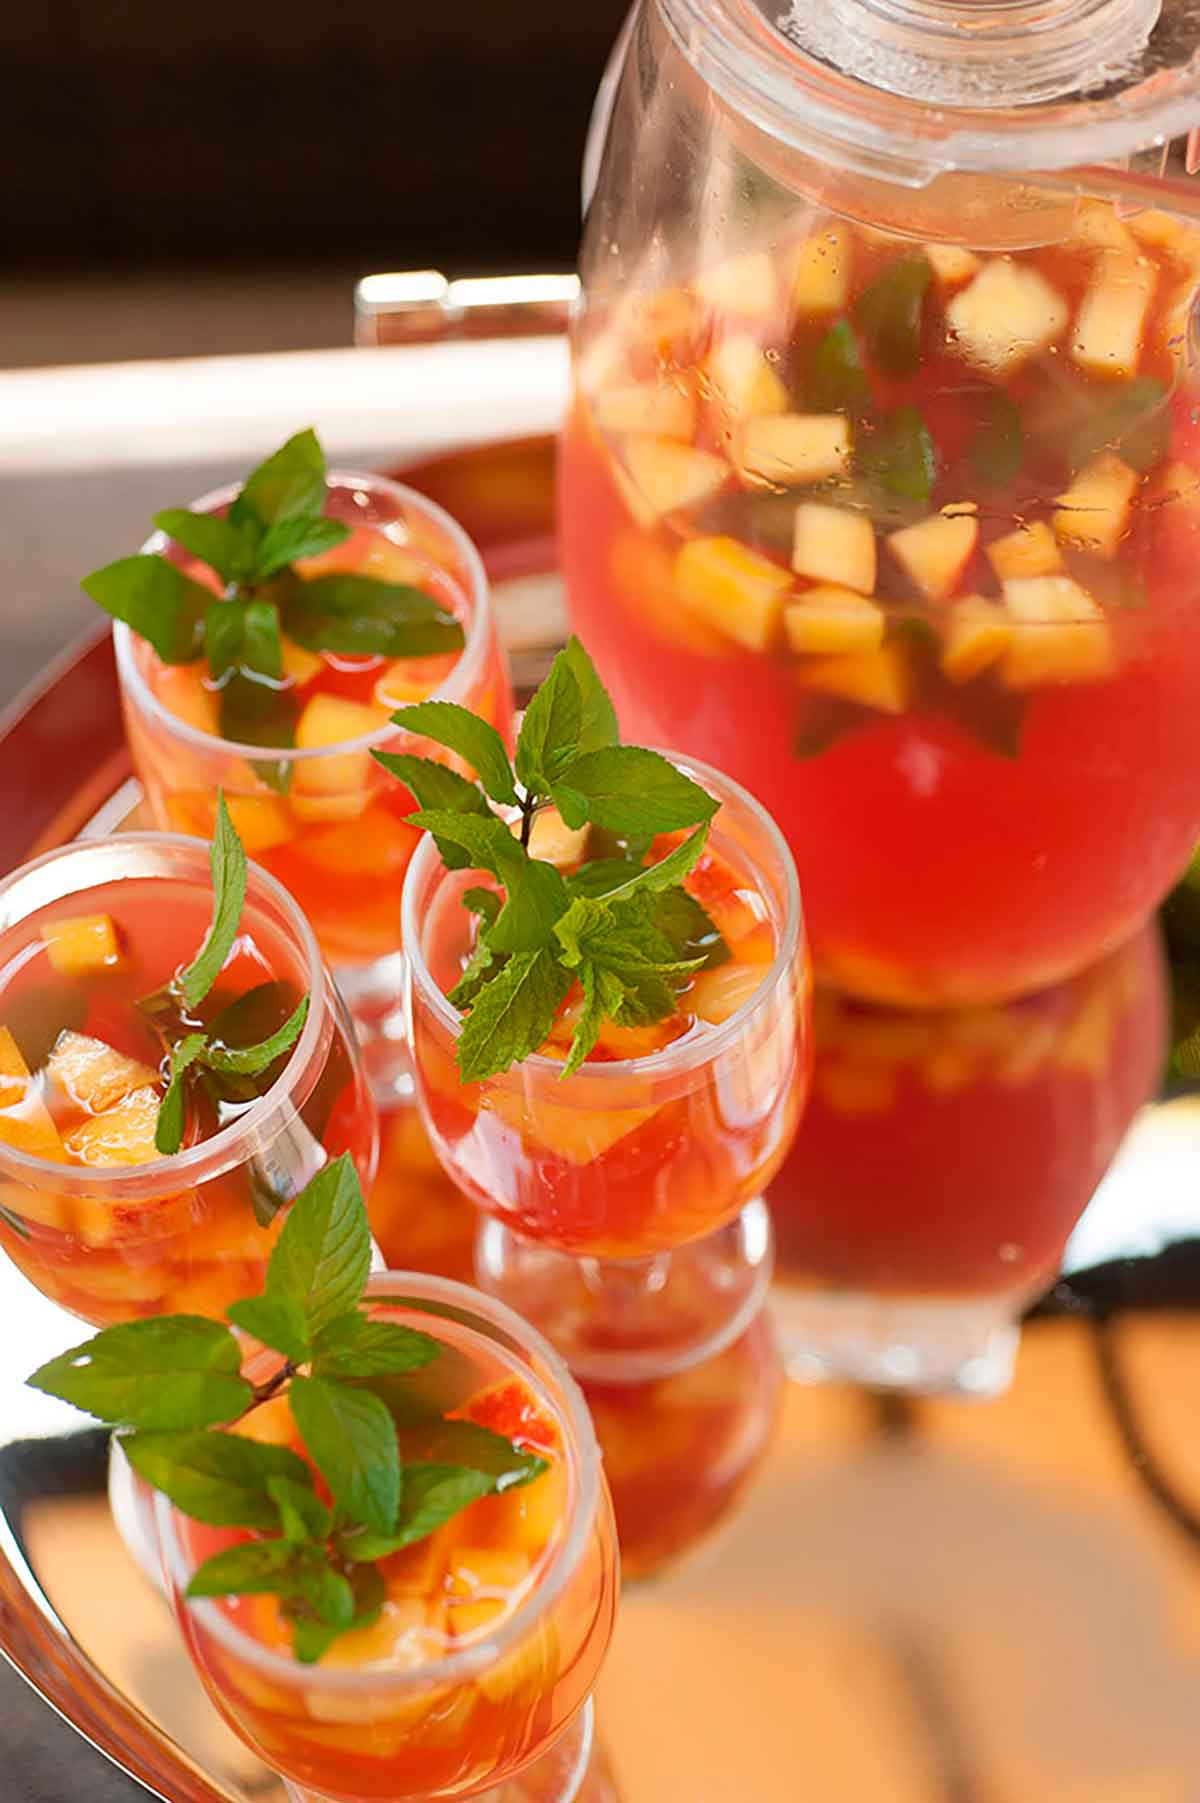 A silver tray with 4 glasses of fruit-filled watermelon sangria, garnished with mint, next to a full pitcher.